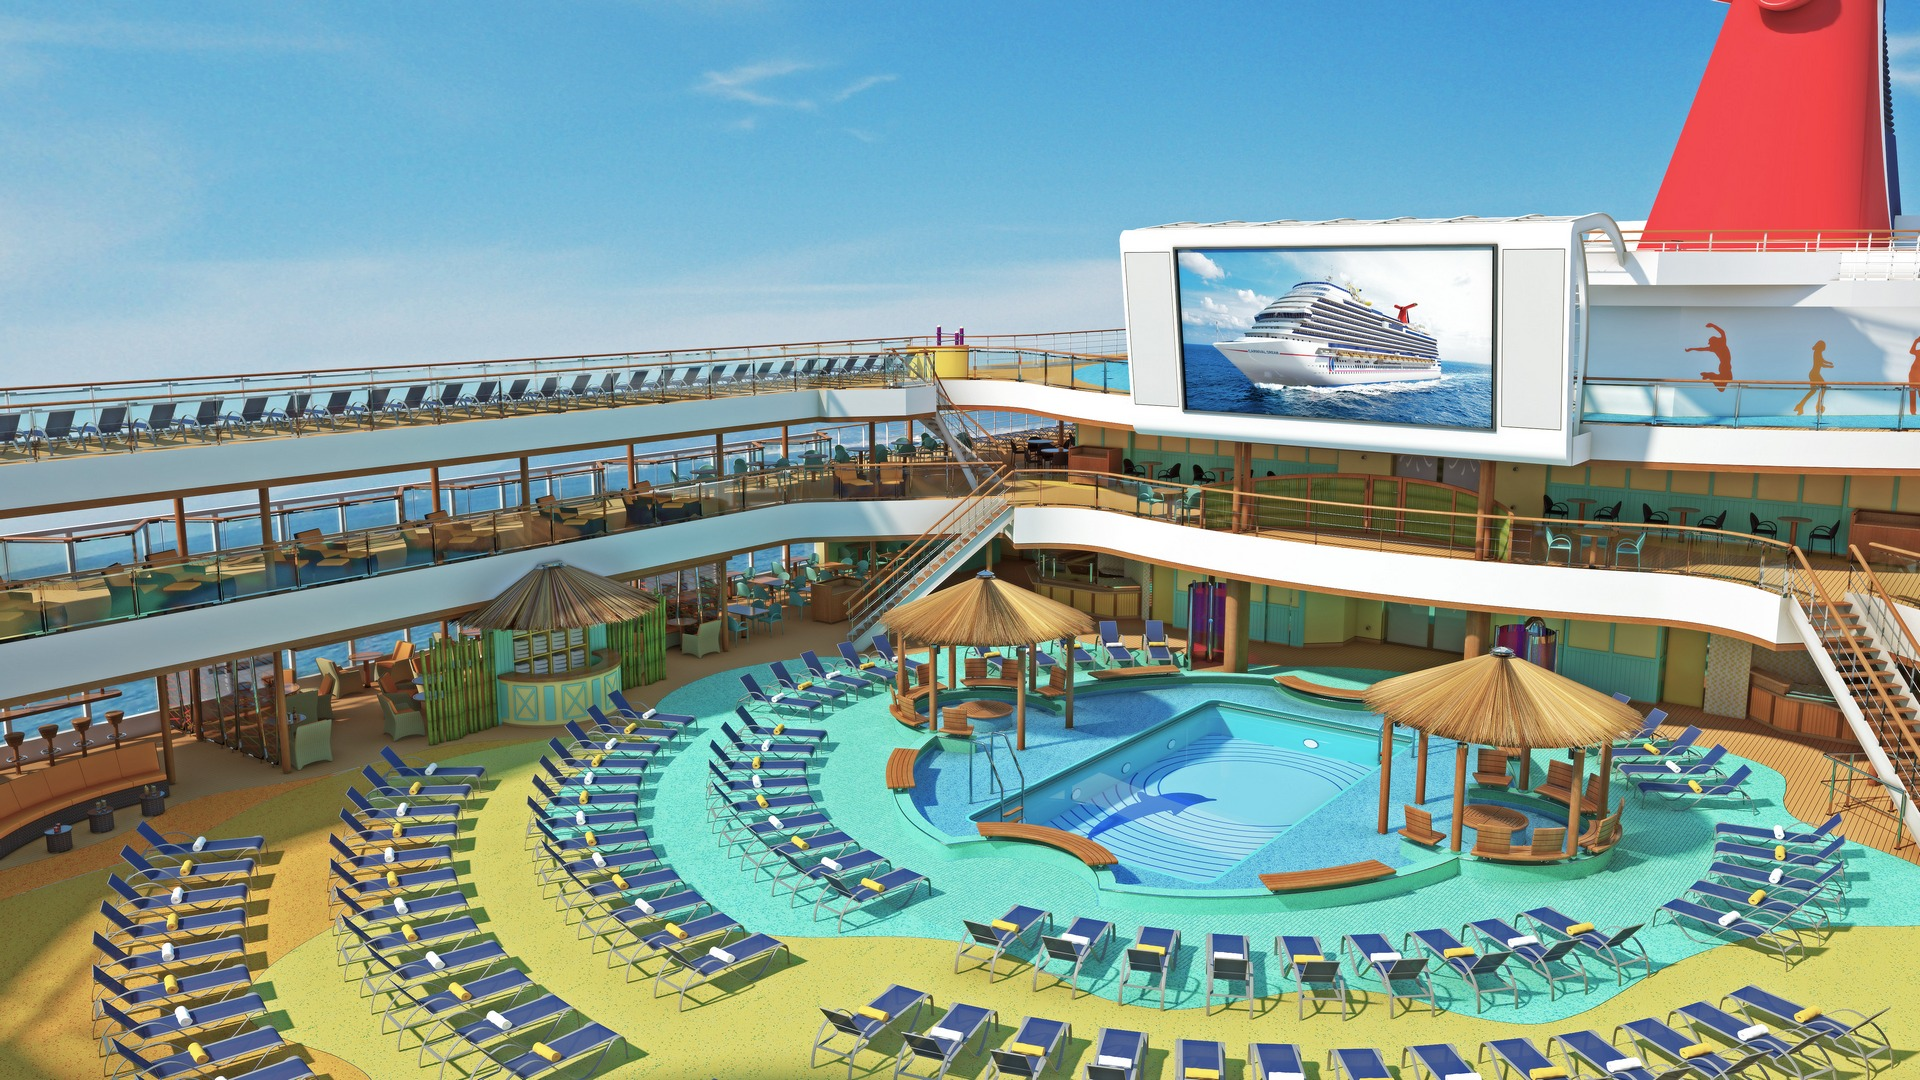 Carnival Breeze Joins The Carnival Cruise Lines Fleet